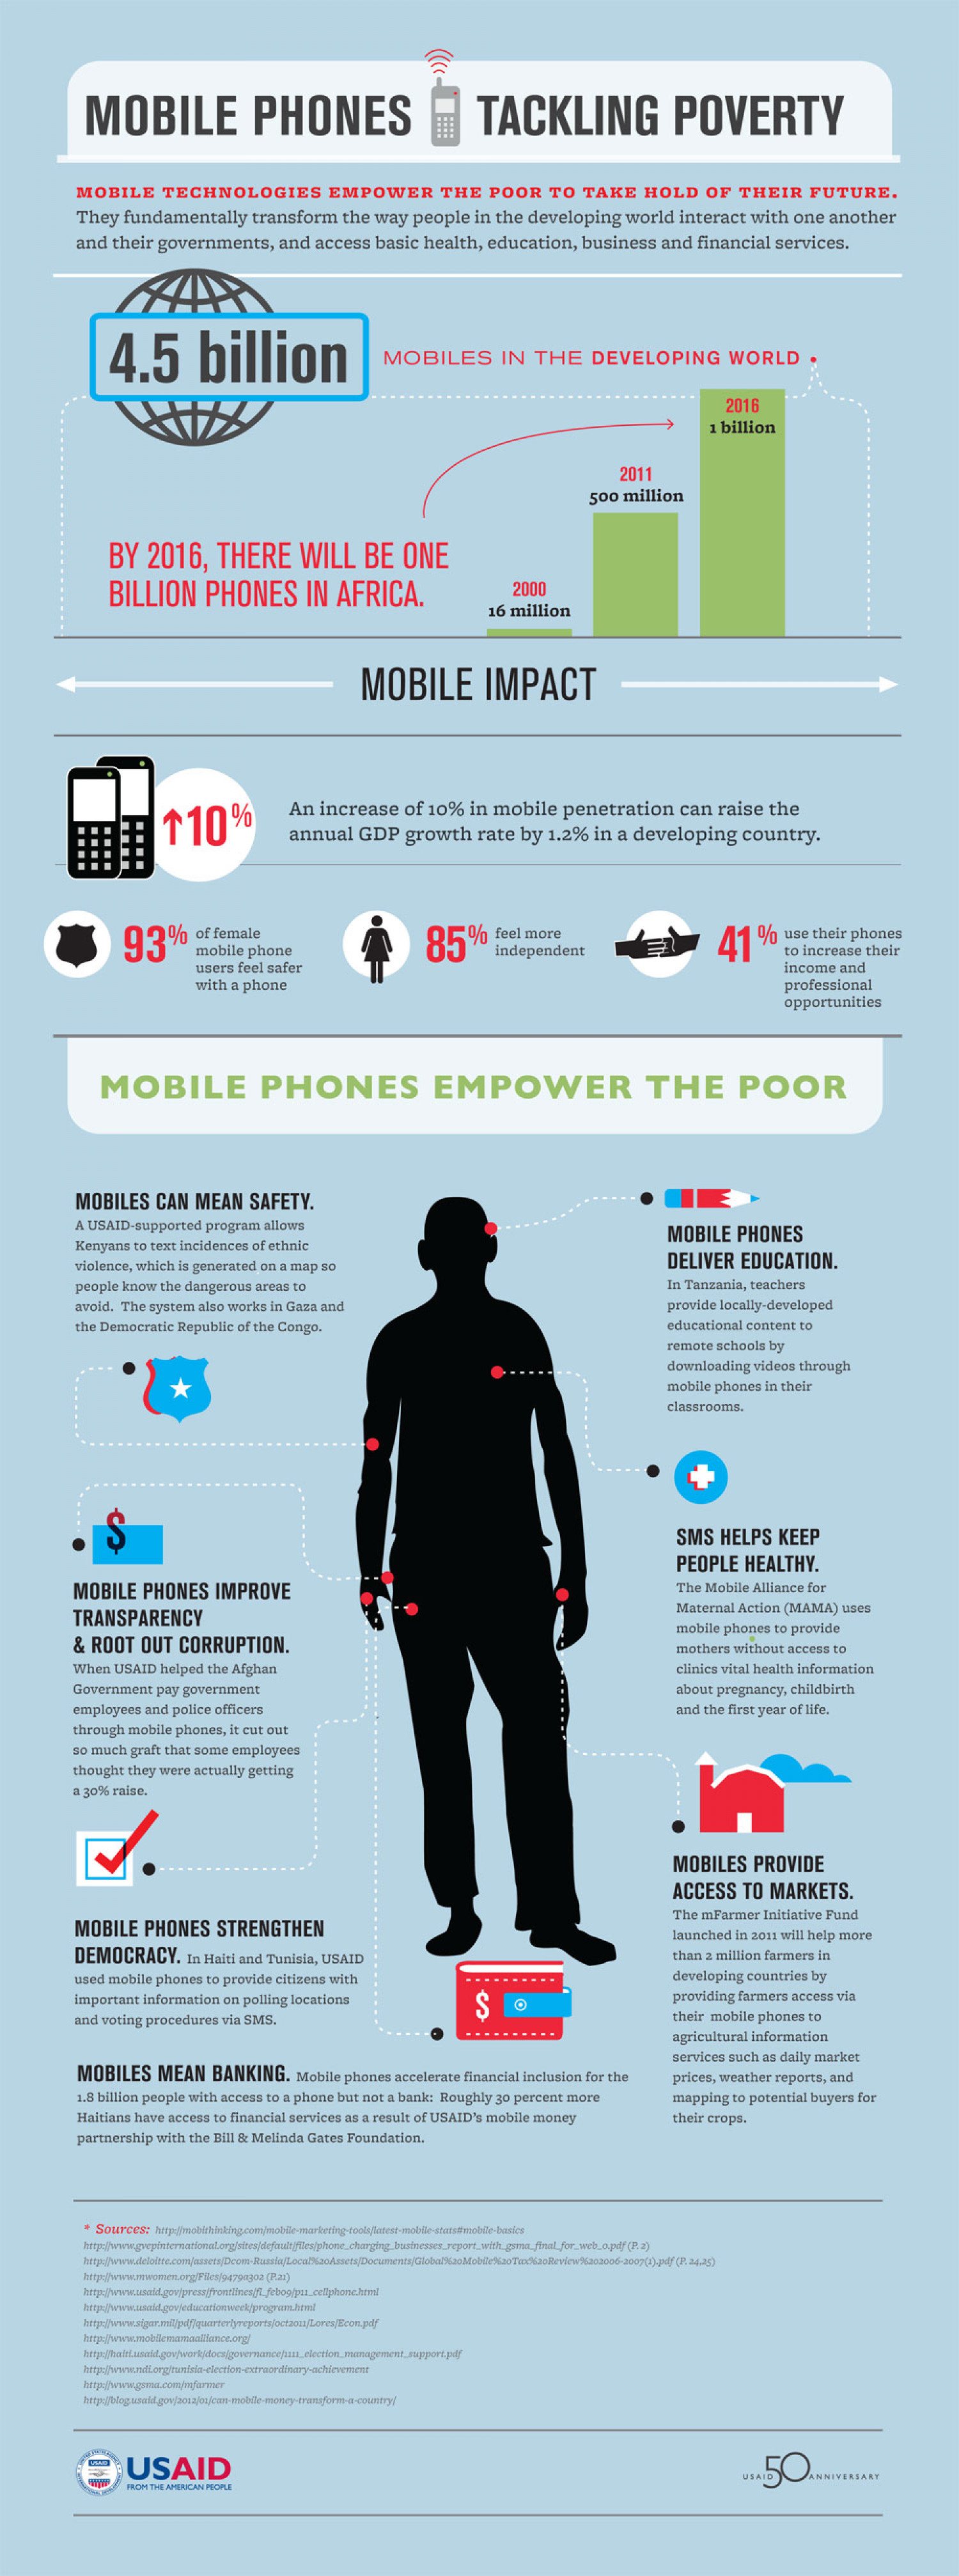 Mobile Phones Tackling Poverty Infographic